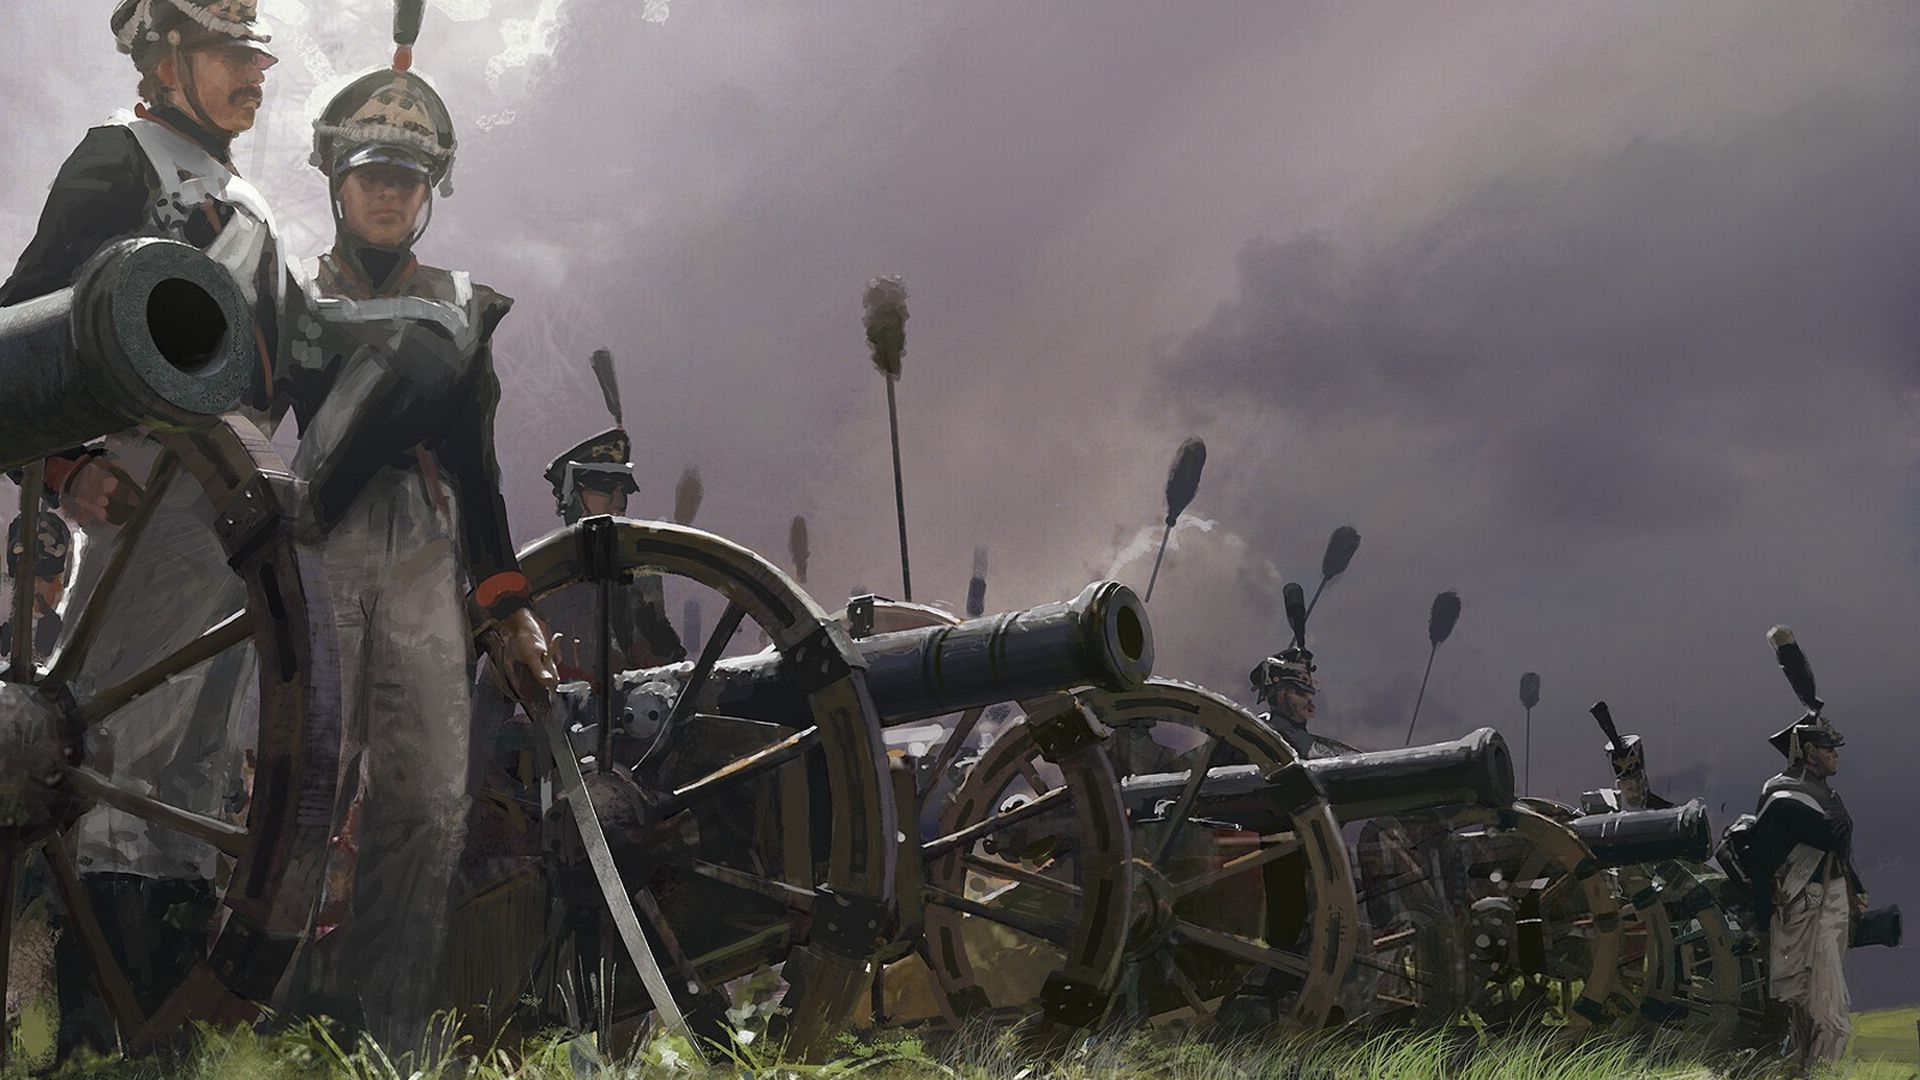 Age Of Empires Wallpapers